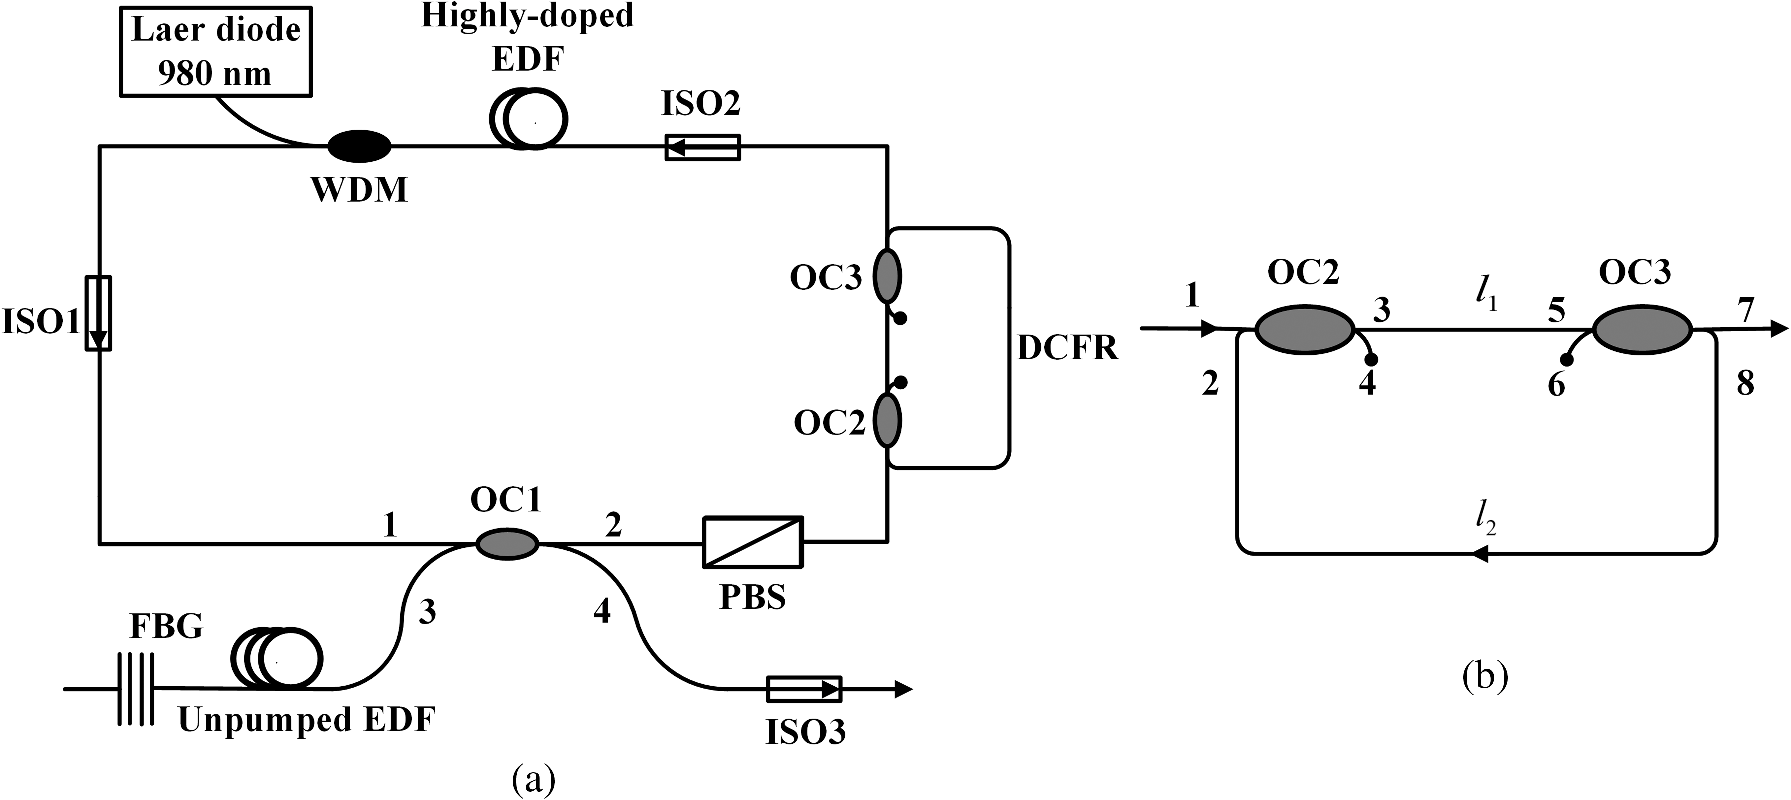 hight resolution of  a schematic setup of the slm edf ring laser b schematic diagram of dcfr